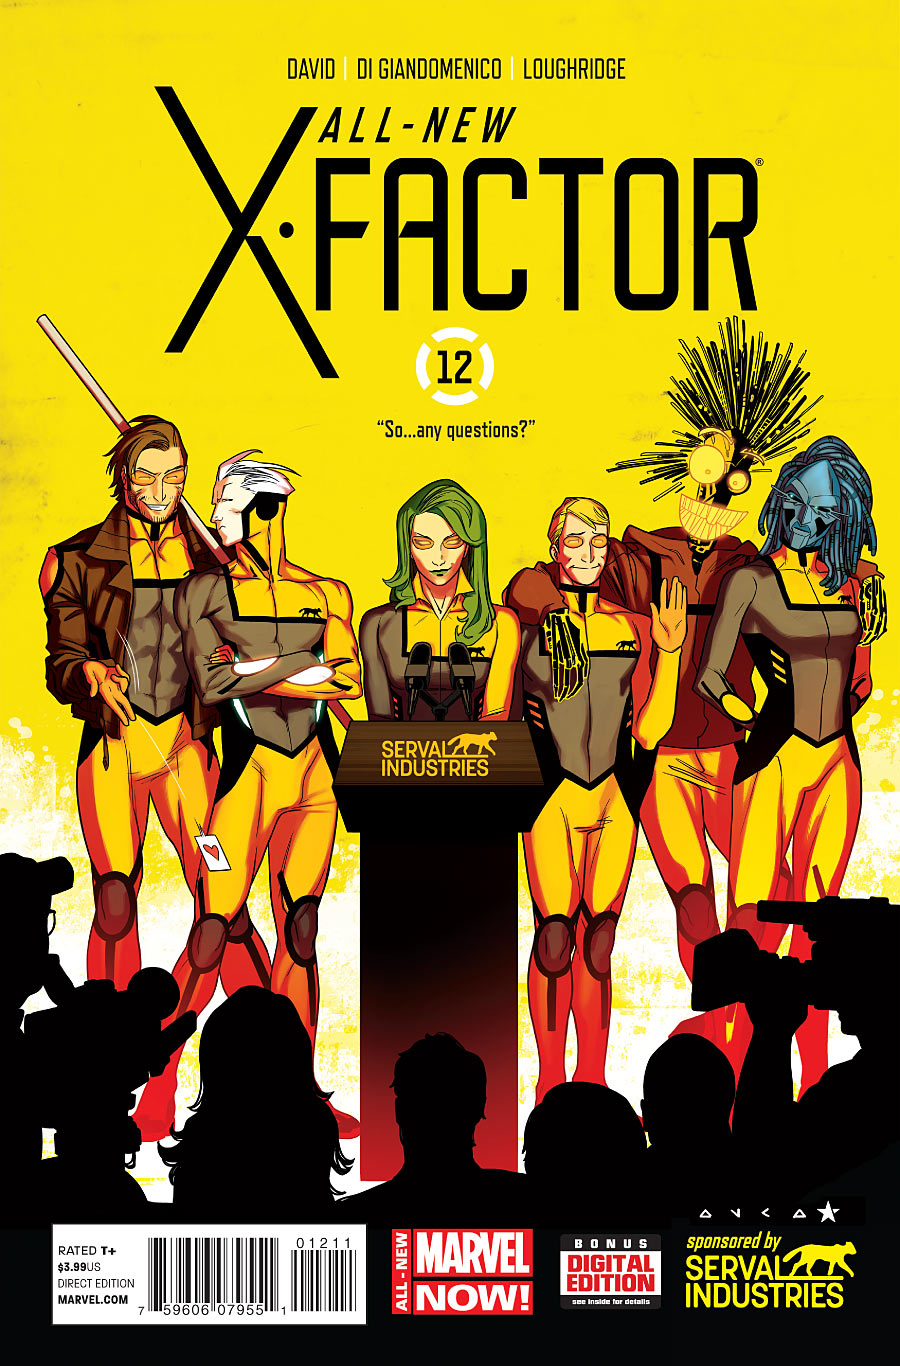 All-New_X-Factor_12_Portada